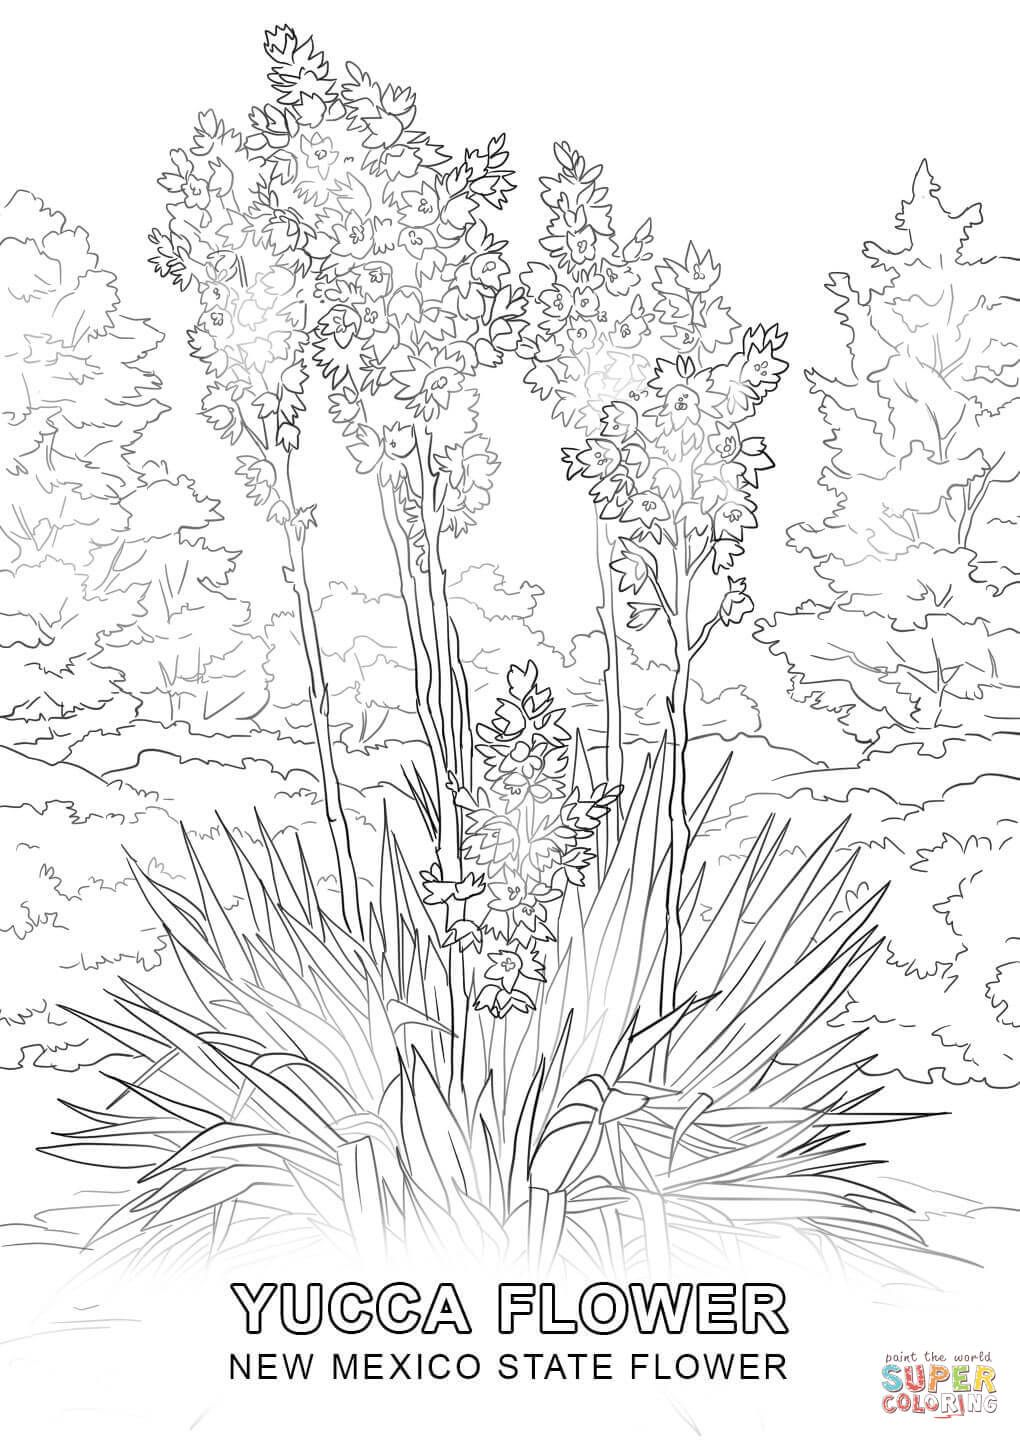 New Mexico State Flower Coloring Page Jpg 1020 1440